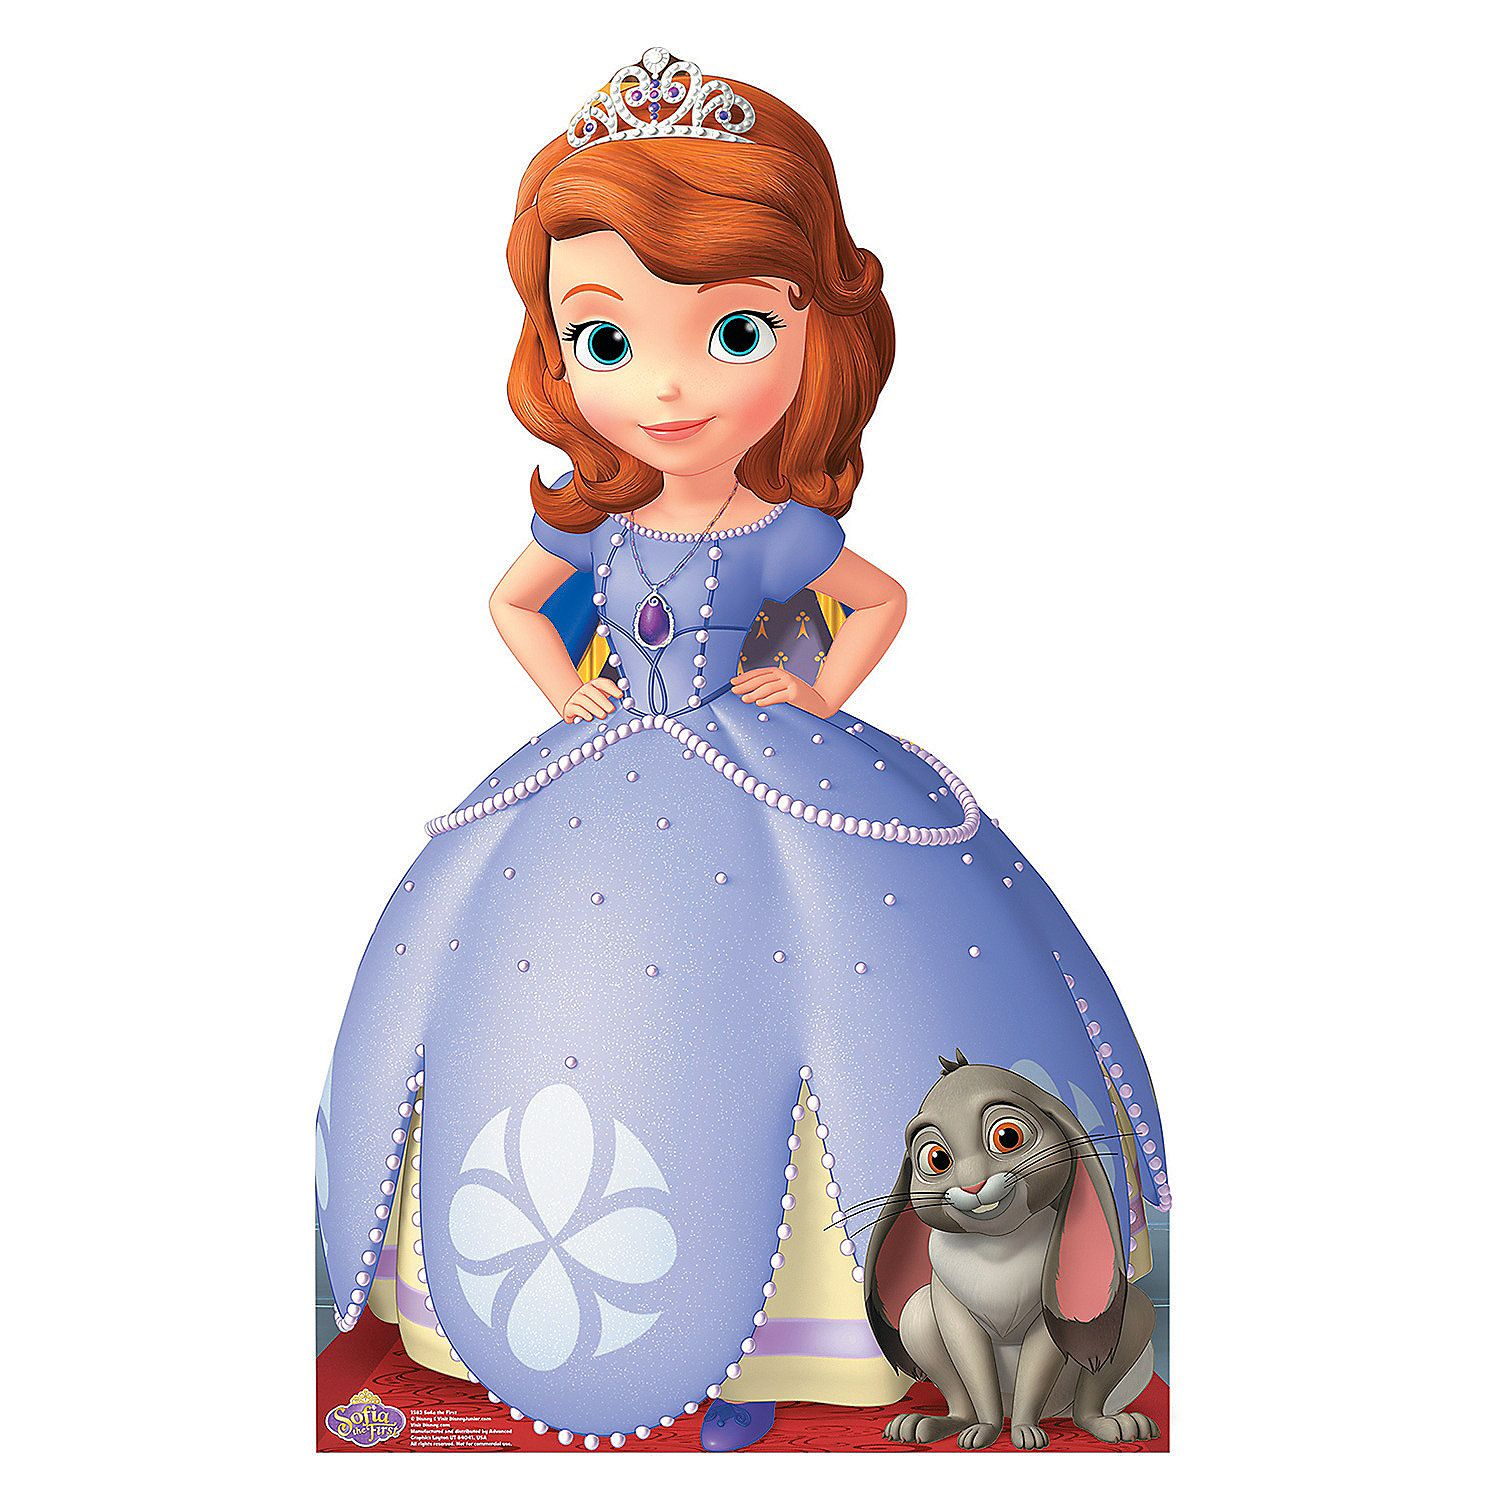 Sofia The First Cardboard Stand Up Sofia The First Characters